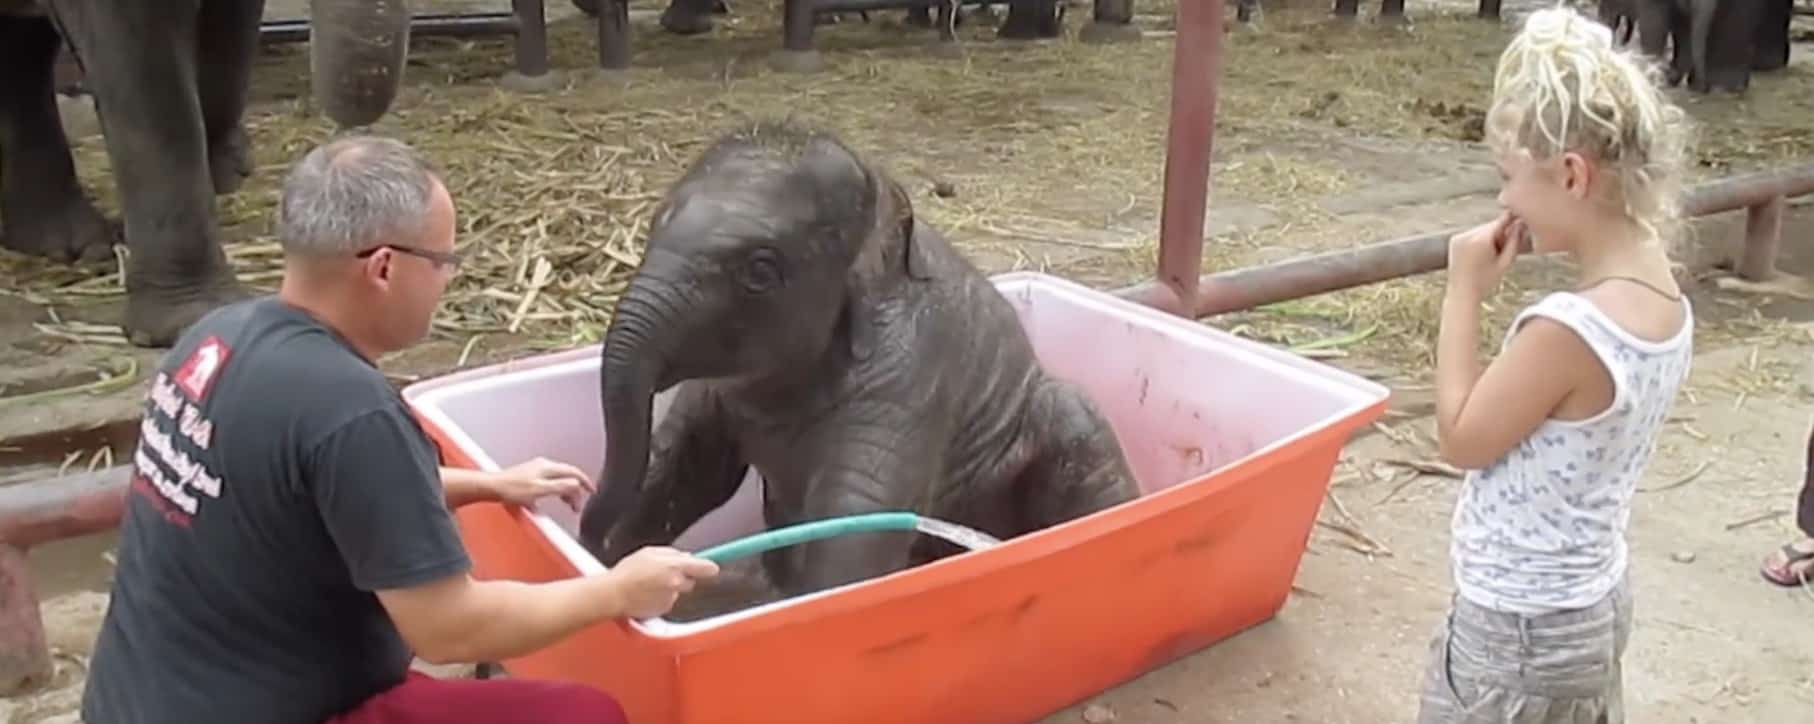 baby elephant's bath time